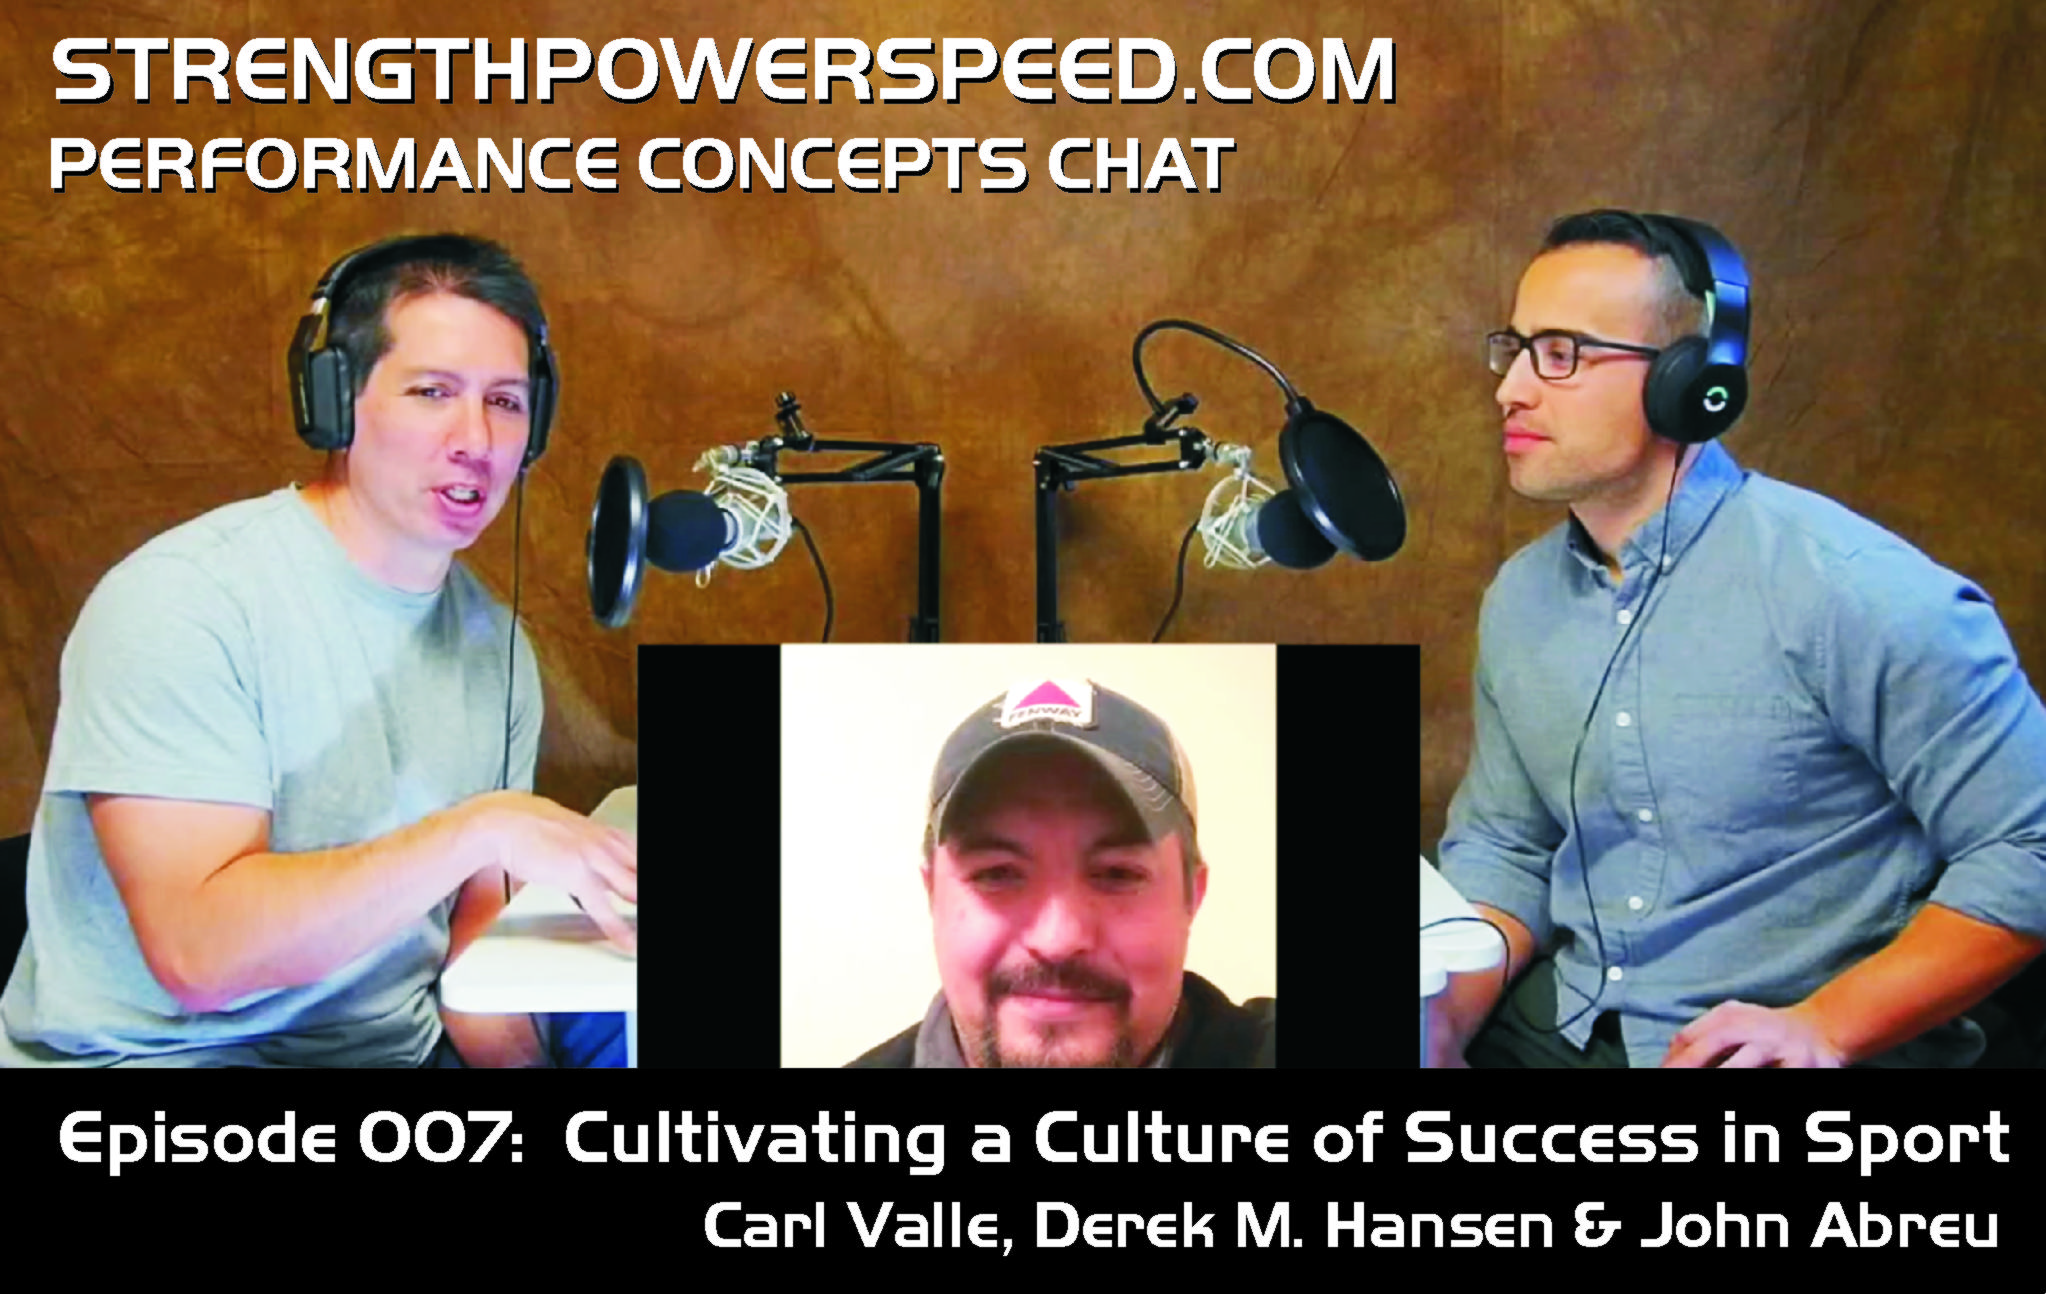 SPS Performance Concepts Chat – Episode 007 – Cultivating a Culture of Success in Sport